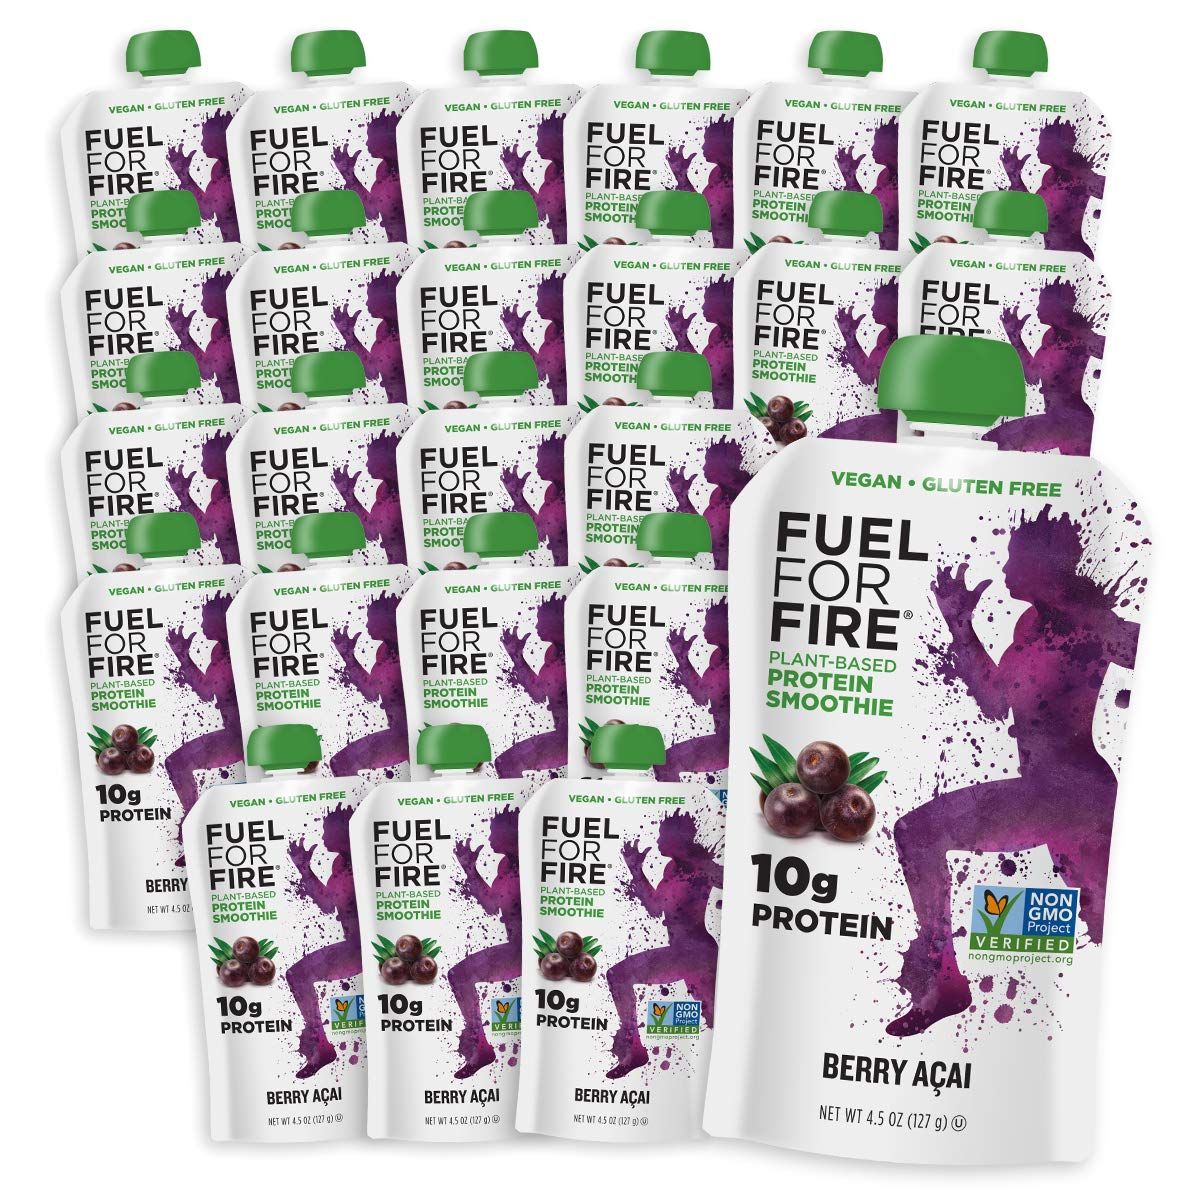 Fuel For Fire VEGAN - Berry Acai Smoothies (24 pack) with Vegan Protein |  Ready to Eat Squeeze Pouch | Soy Free, Lactose Free, Dairy Free, Plant-based Pea Protein, Gluten Free | On the Go